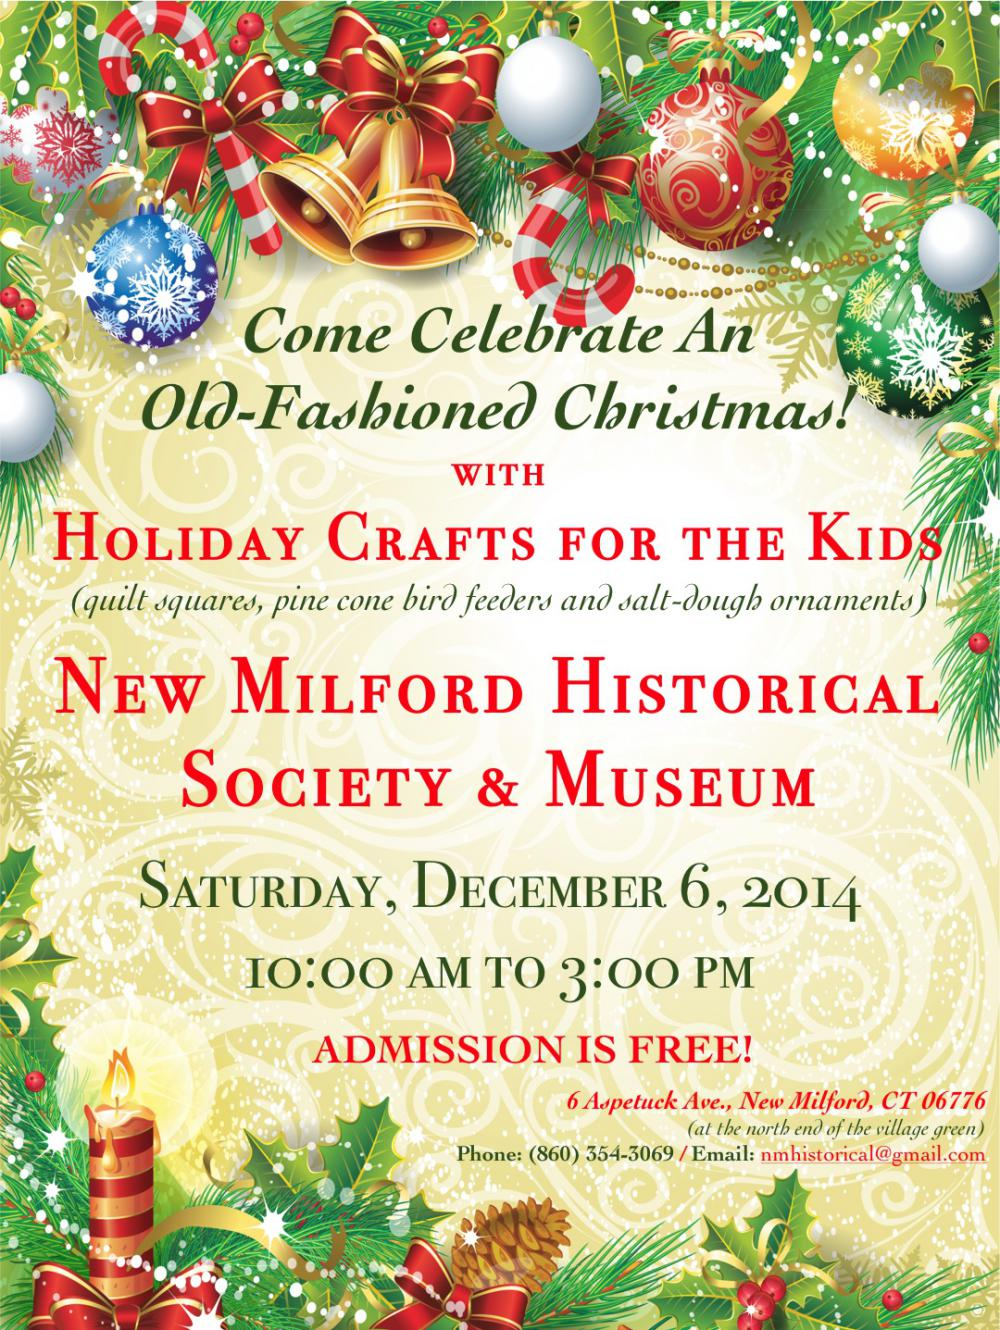 Come celebrate an old-fashioned Christmas with